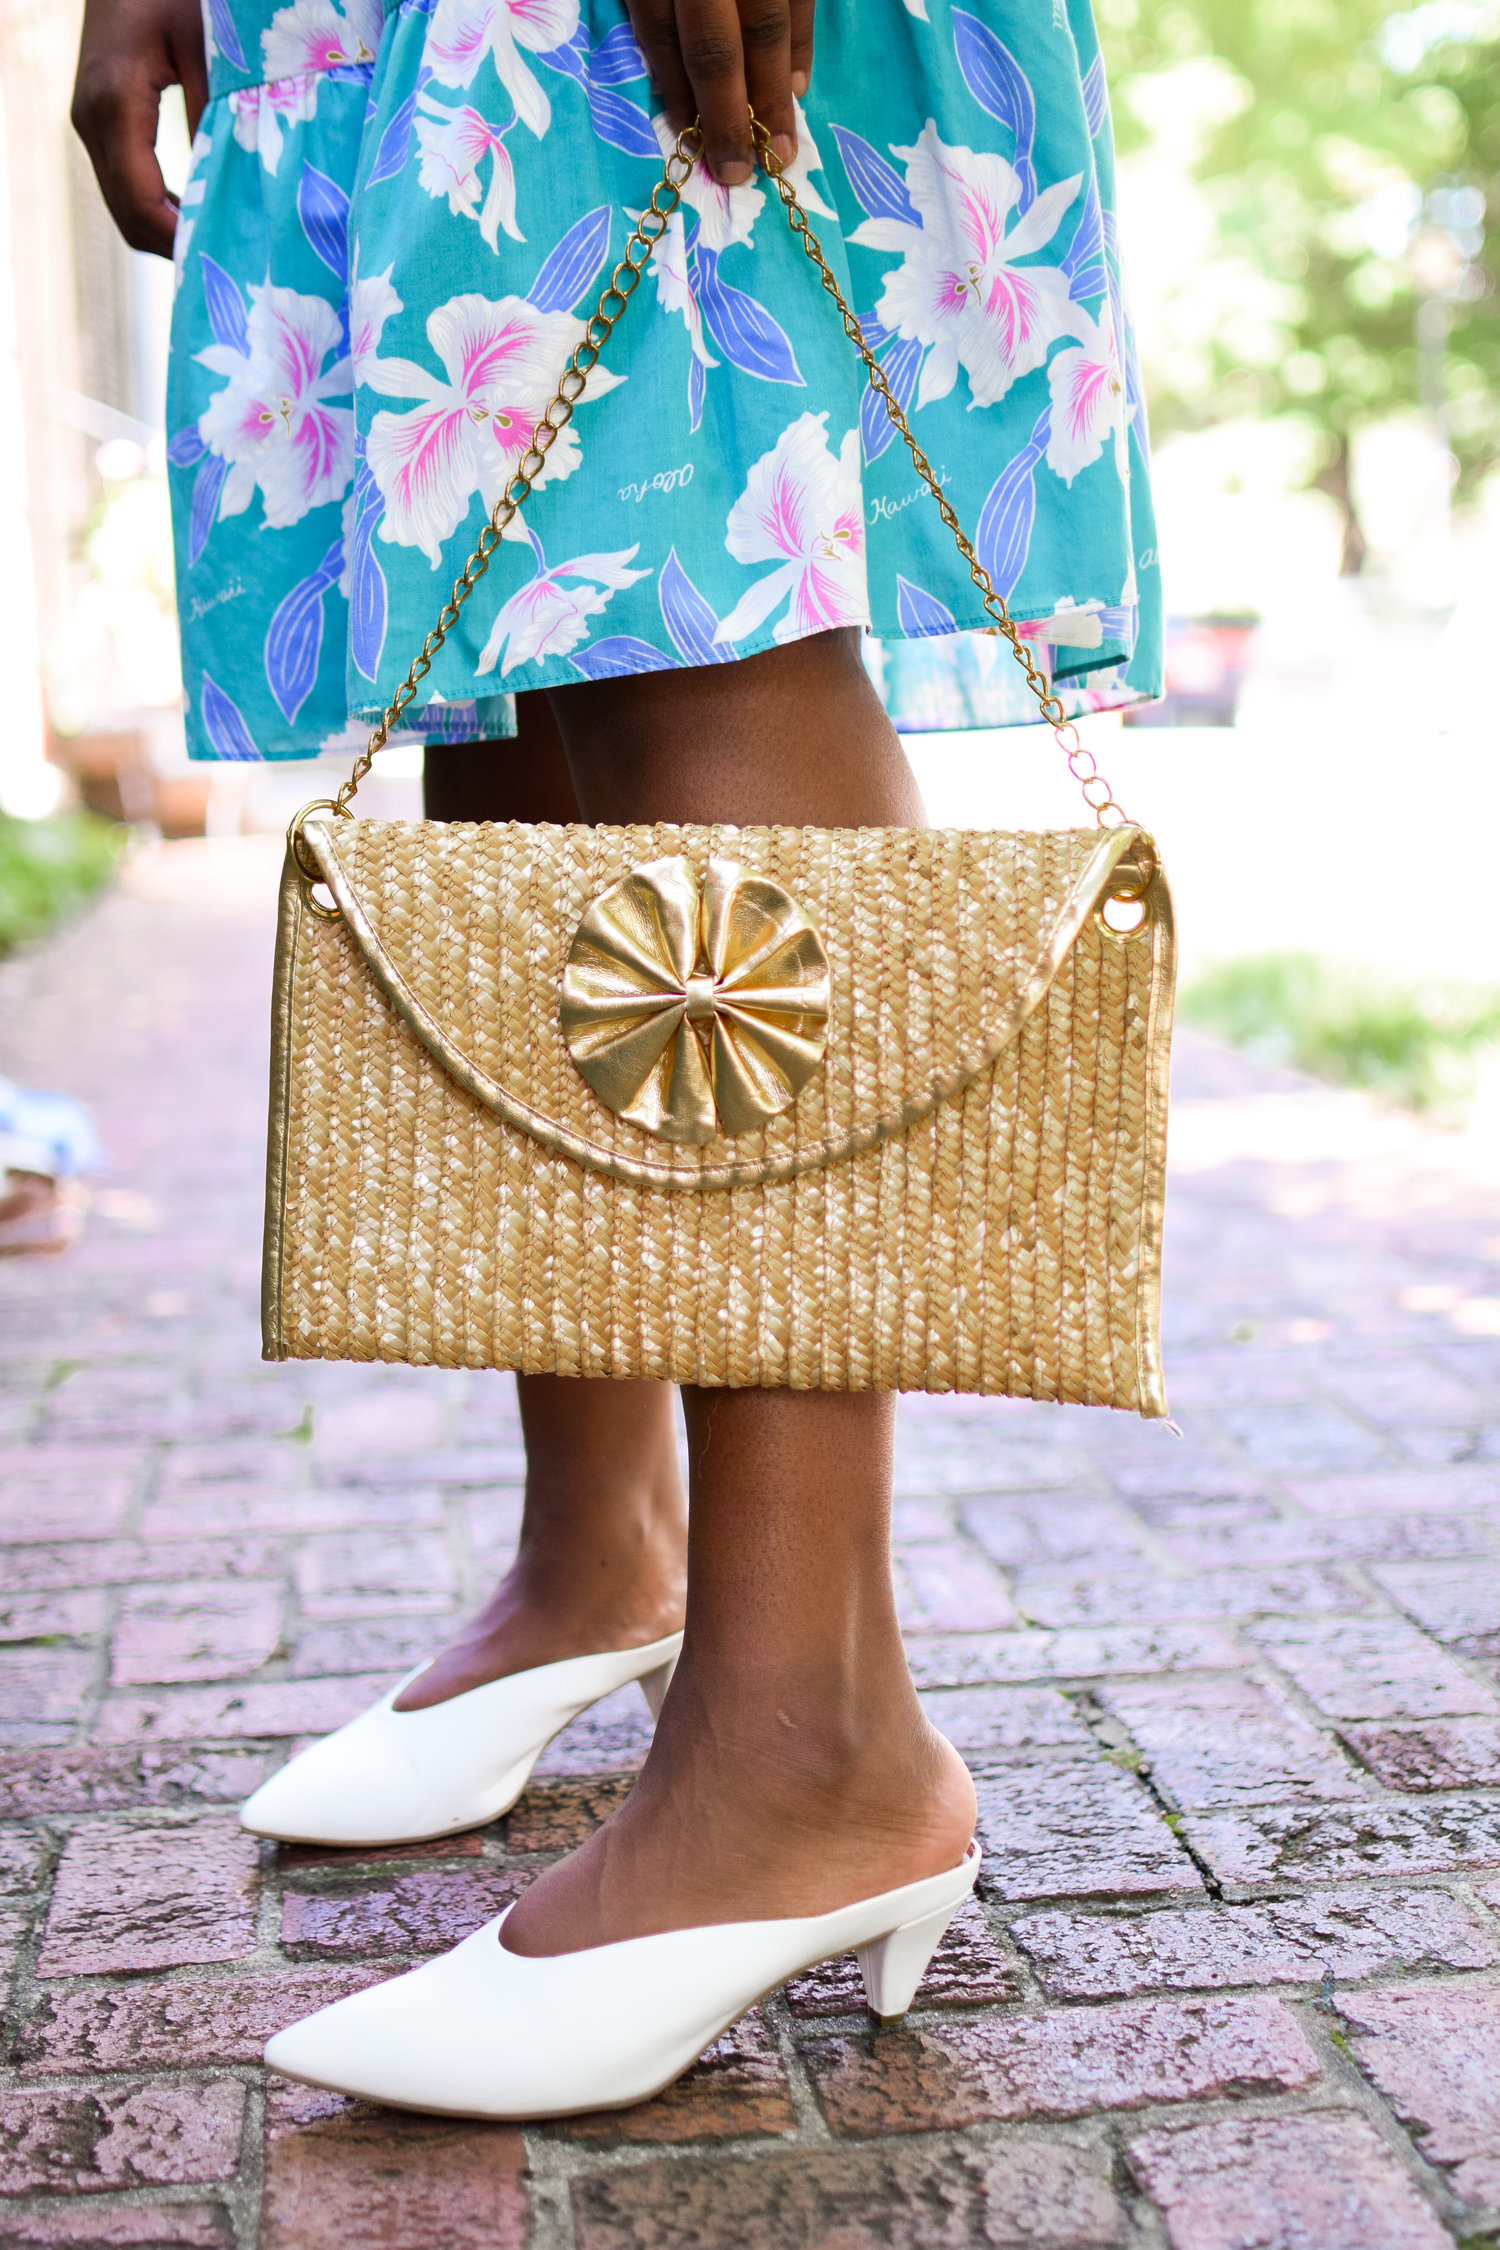 The Gold Trimmed Straw Handbag.